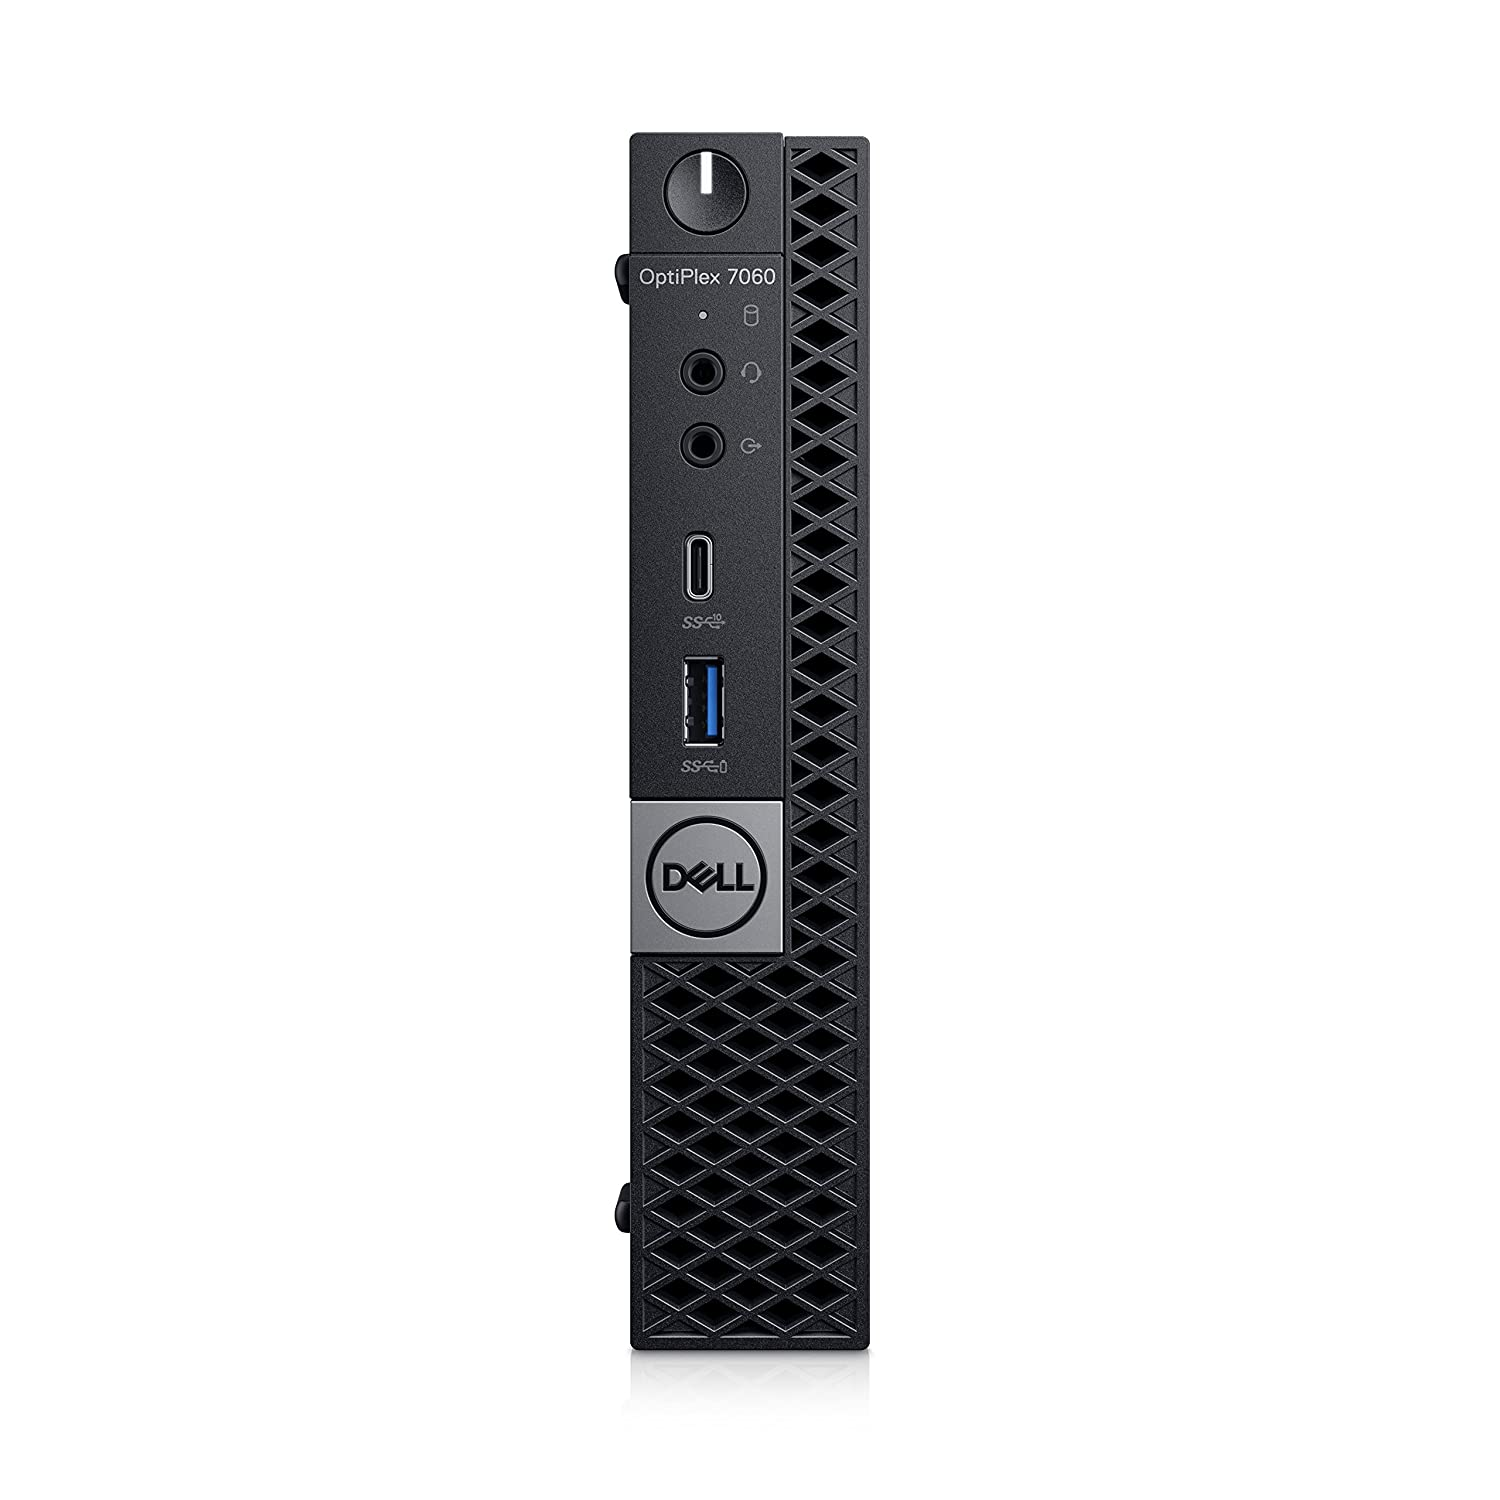 Dell OptiPlex 7060, 2,40 GHz, 8ª generación de procesadores Intel Core i7, i7-8700T, 8 GB, 256 GB, Windows 10 Pro